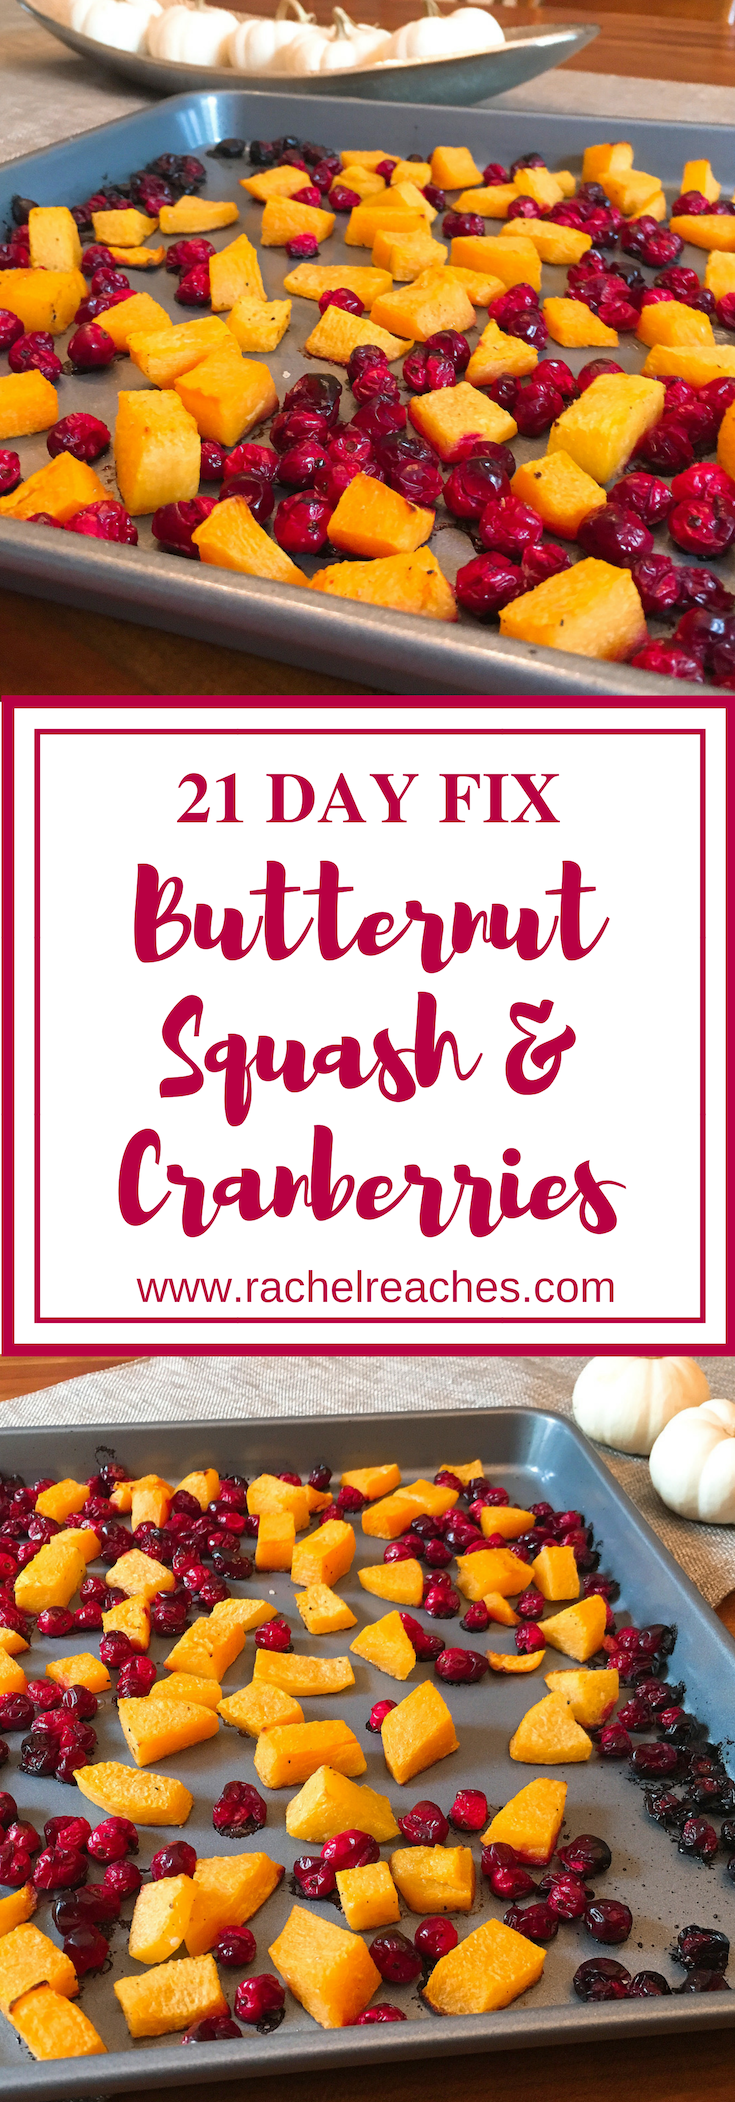 Butternut Squash & Cranberries Pin - 21 Day Fix.png